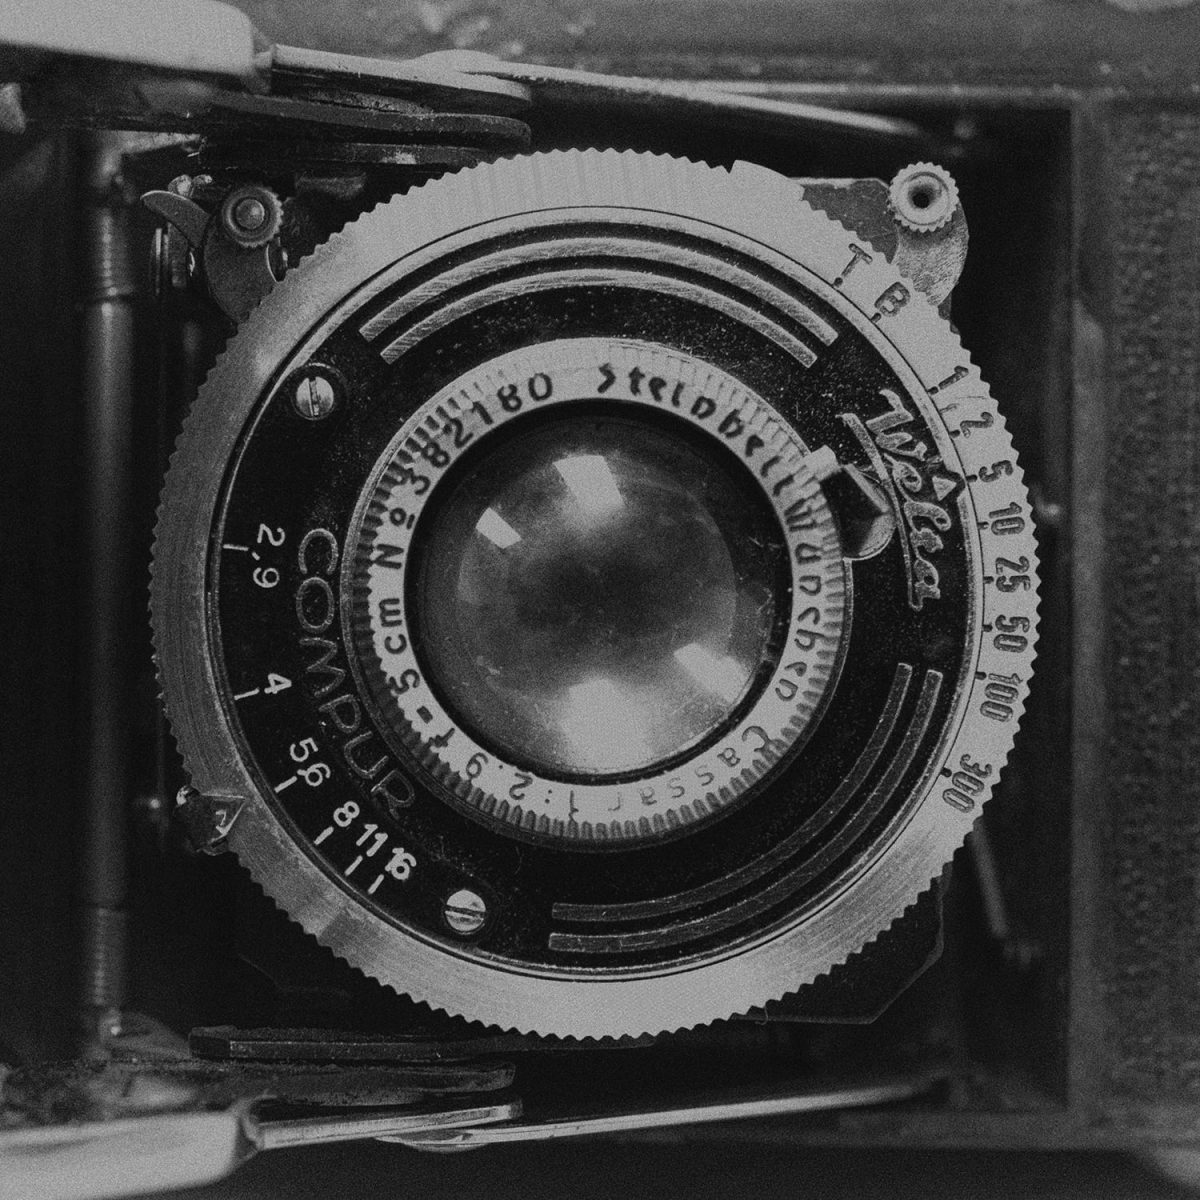 Antique lens serves as an icon for the Keith Dotson Fine Art Photography Podcast